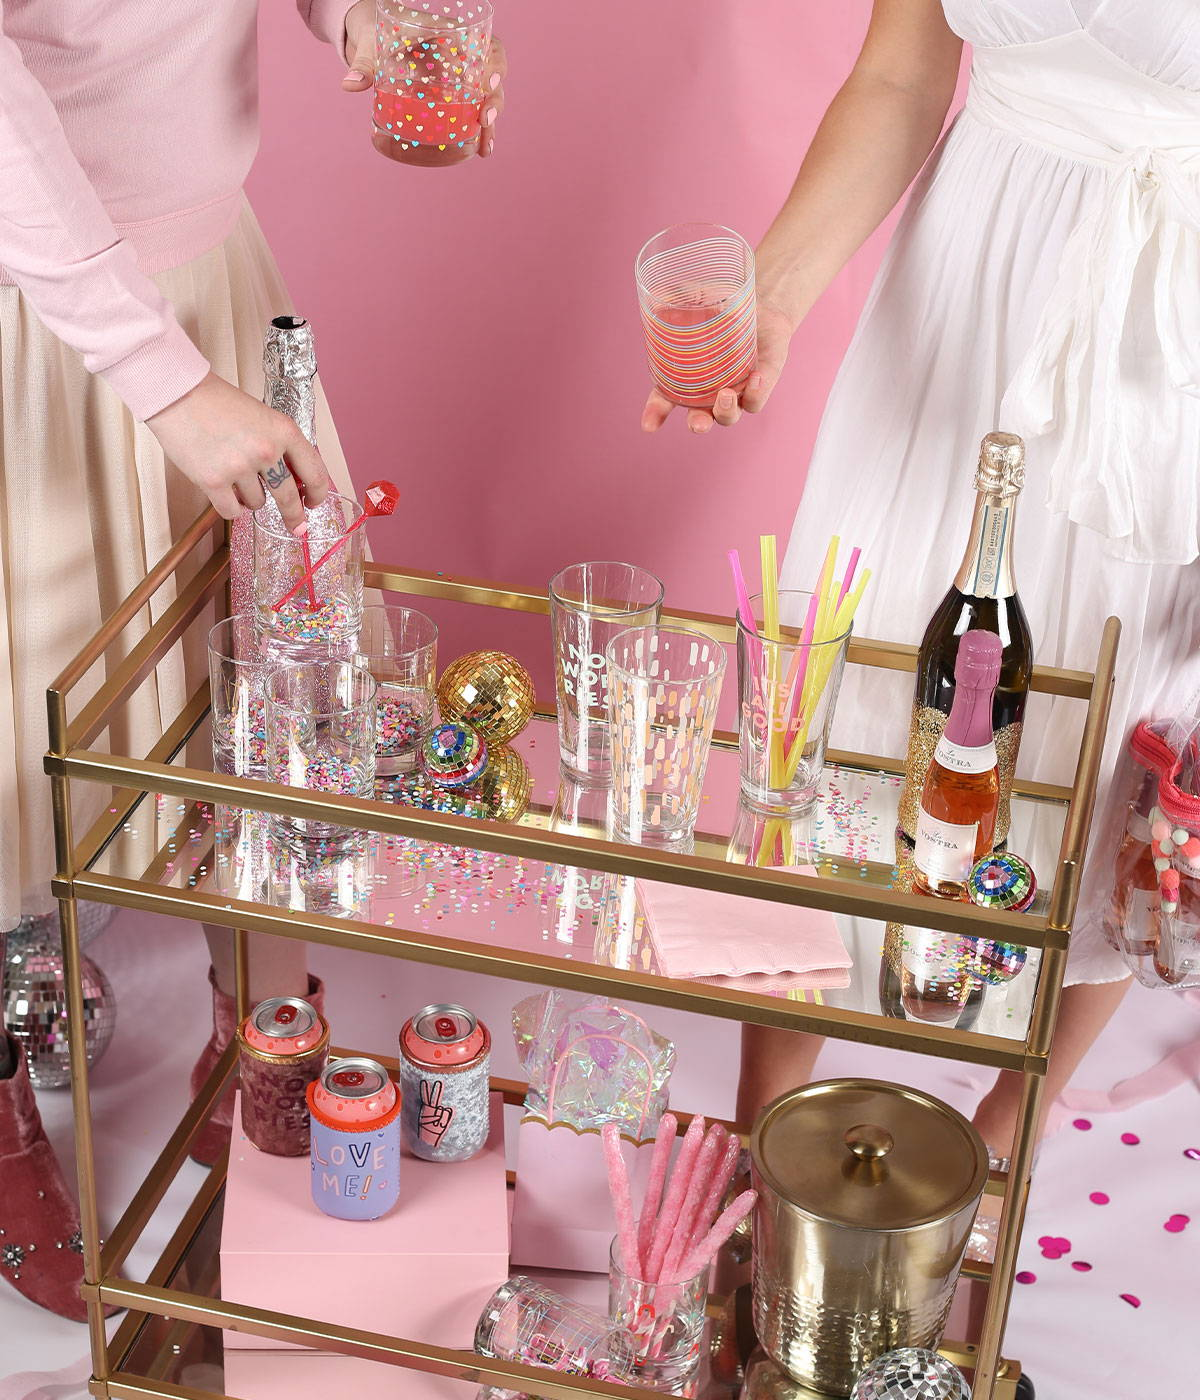 A bar cart with cute glassware and girls holding cute rocks glasses.